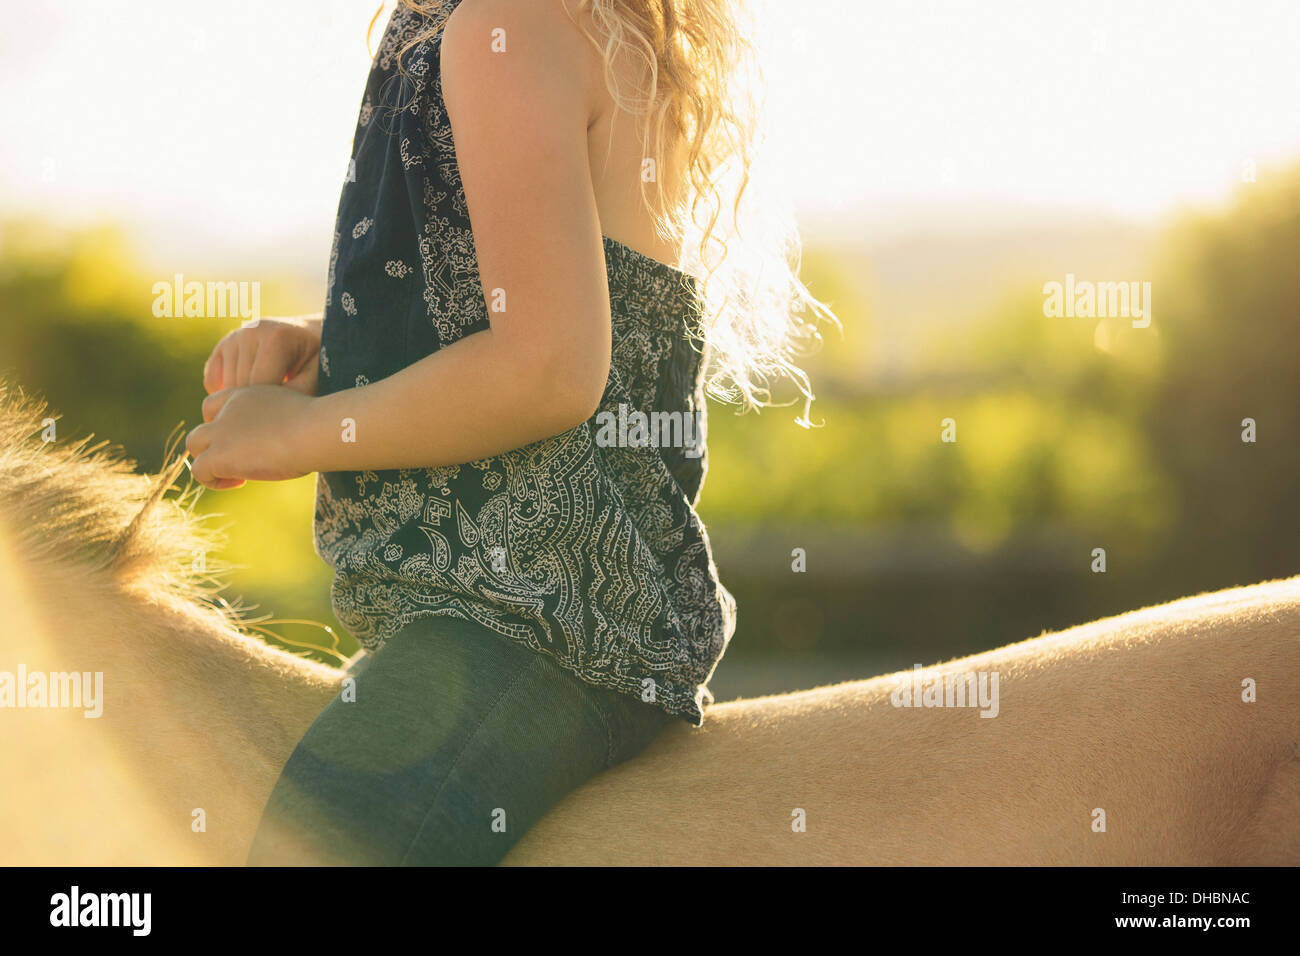 A young girl sitting on a horse. - Stock Image